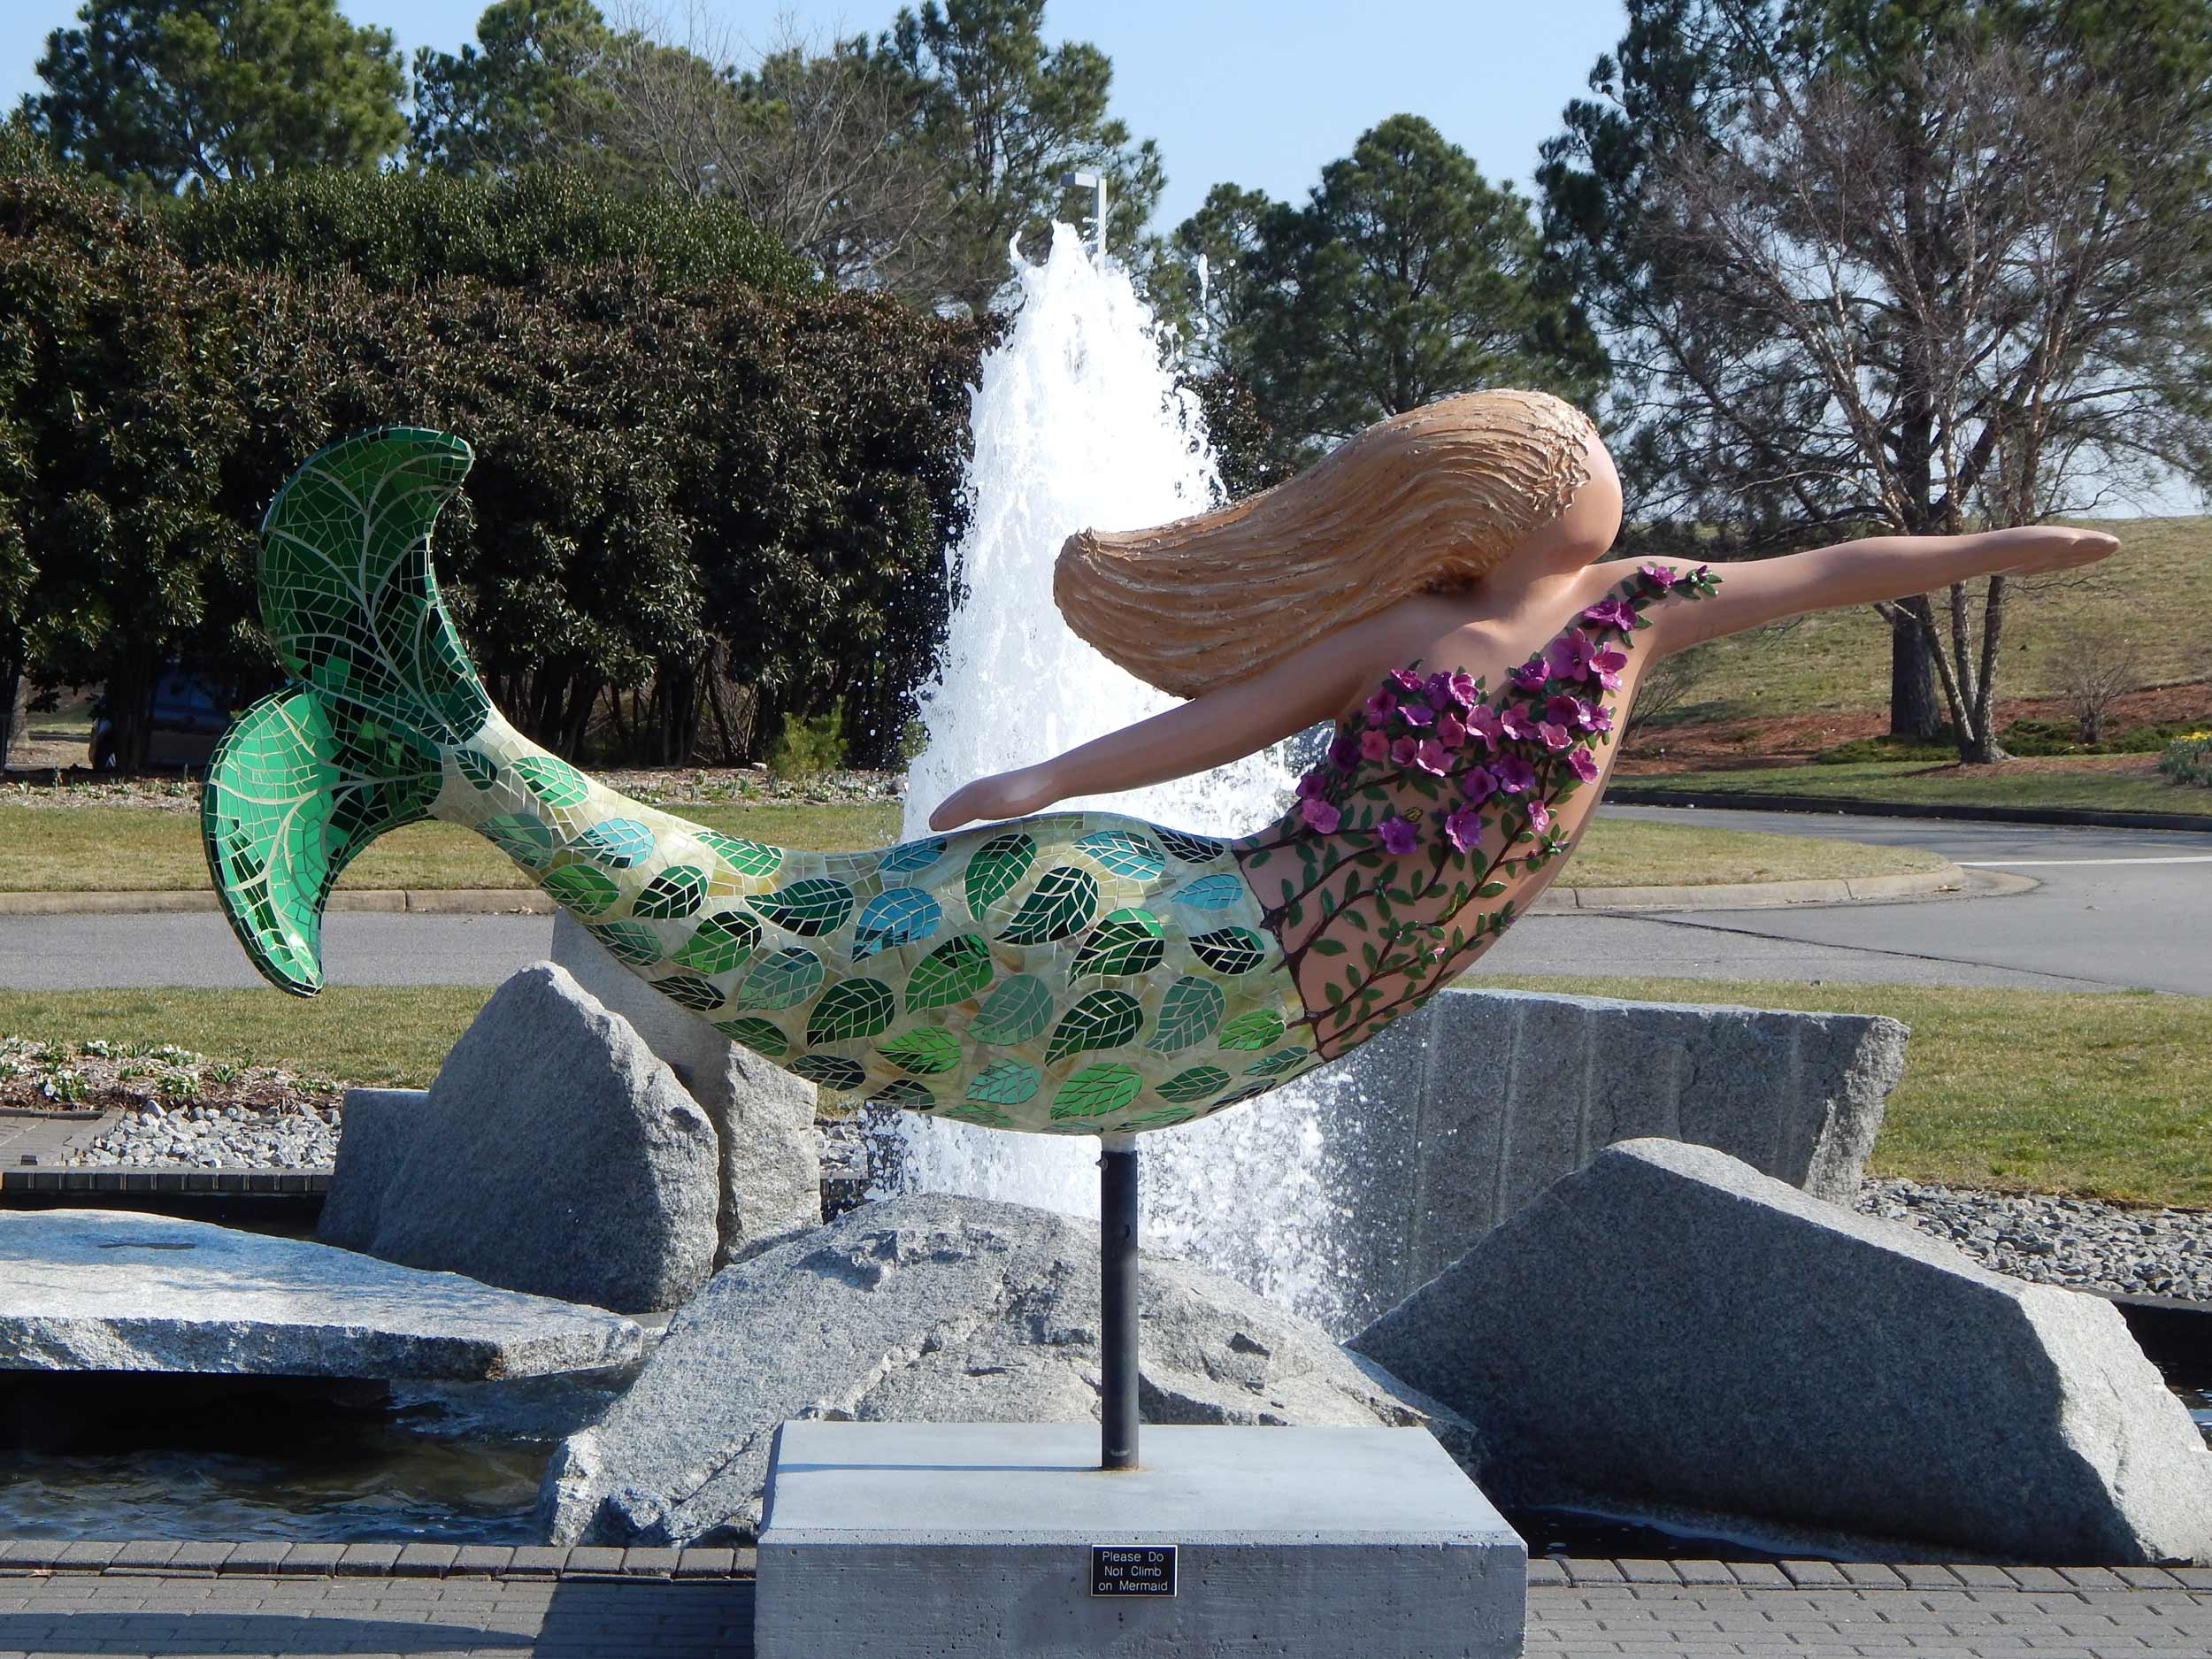 Botanical Gardens Mermaid